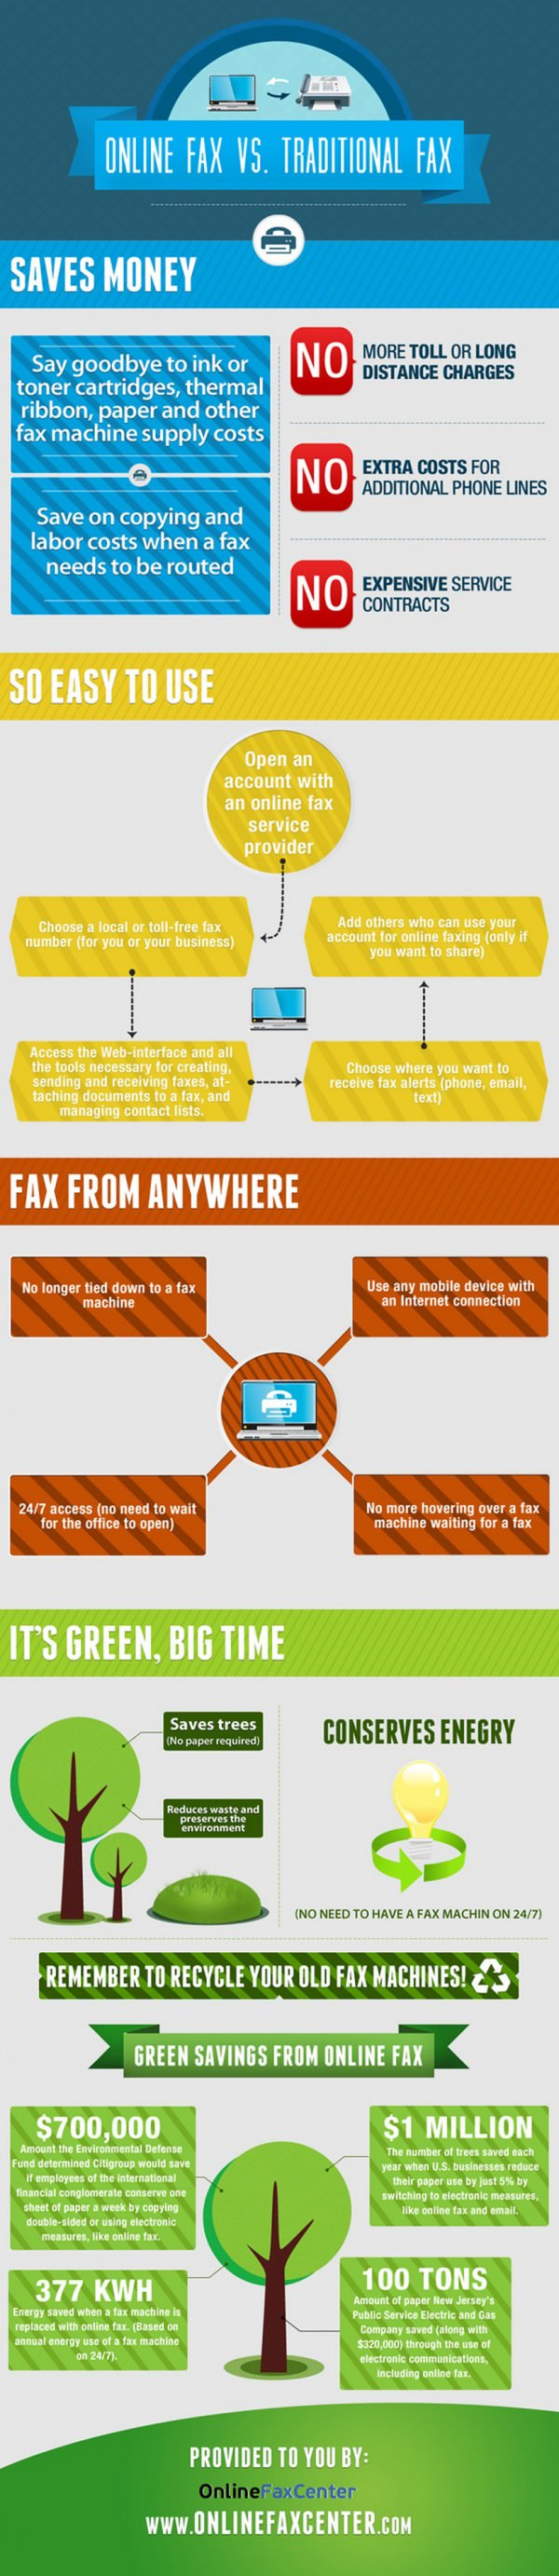 free online fax tool